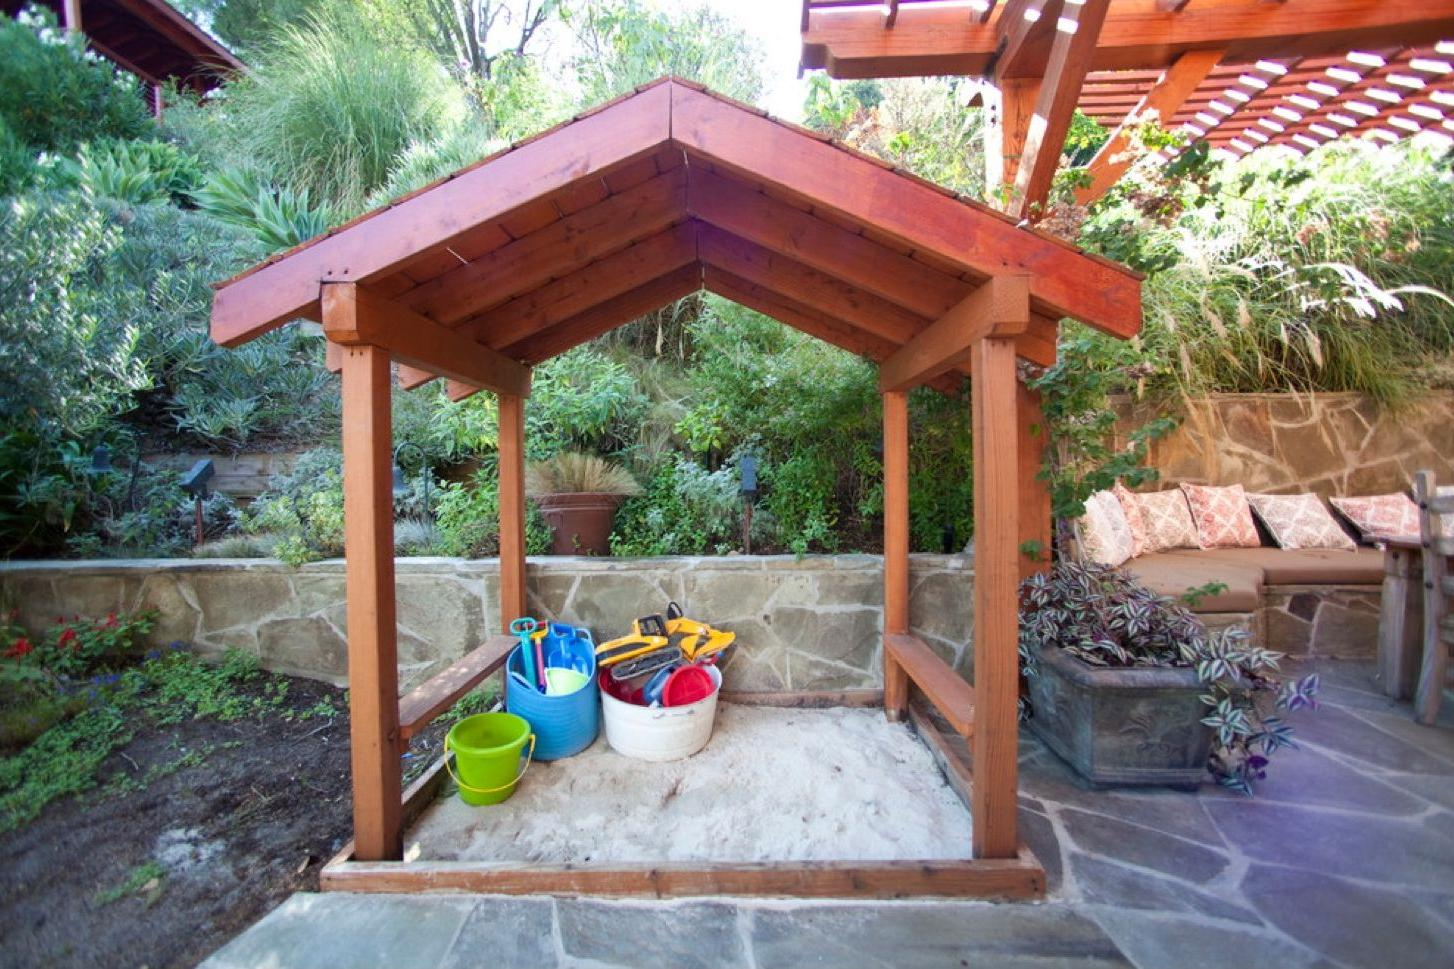 Sandbox with a wooden shed